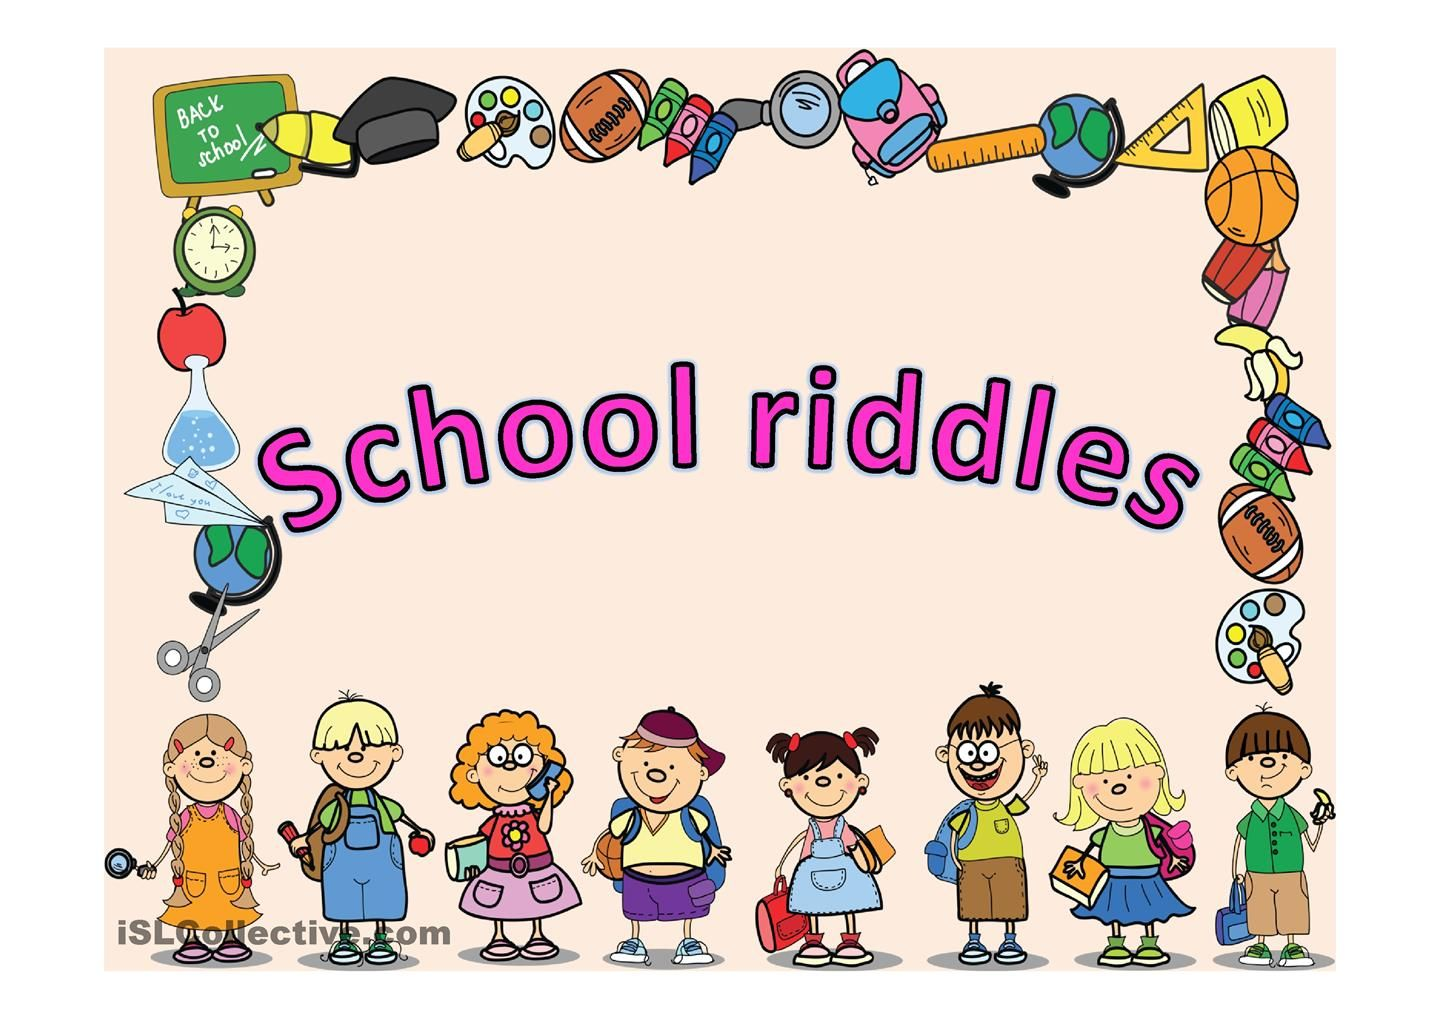 Object Riddles - 0425